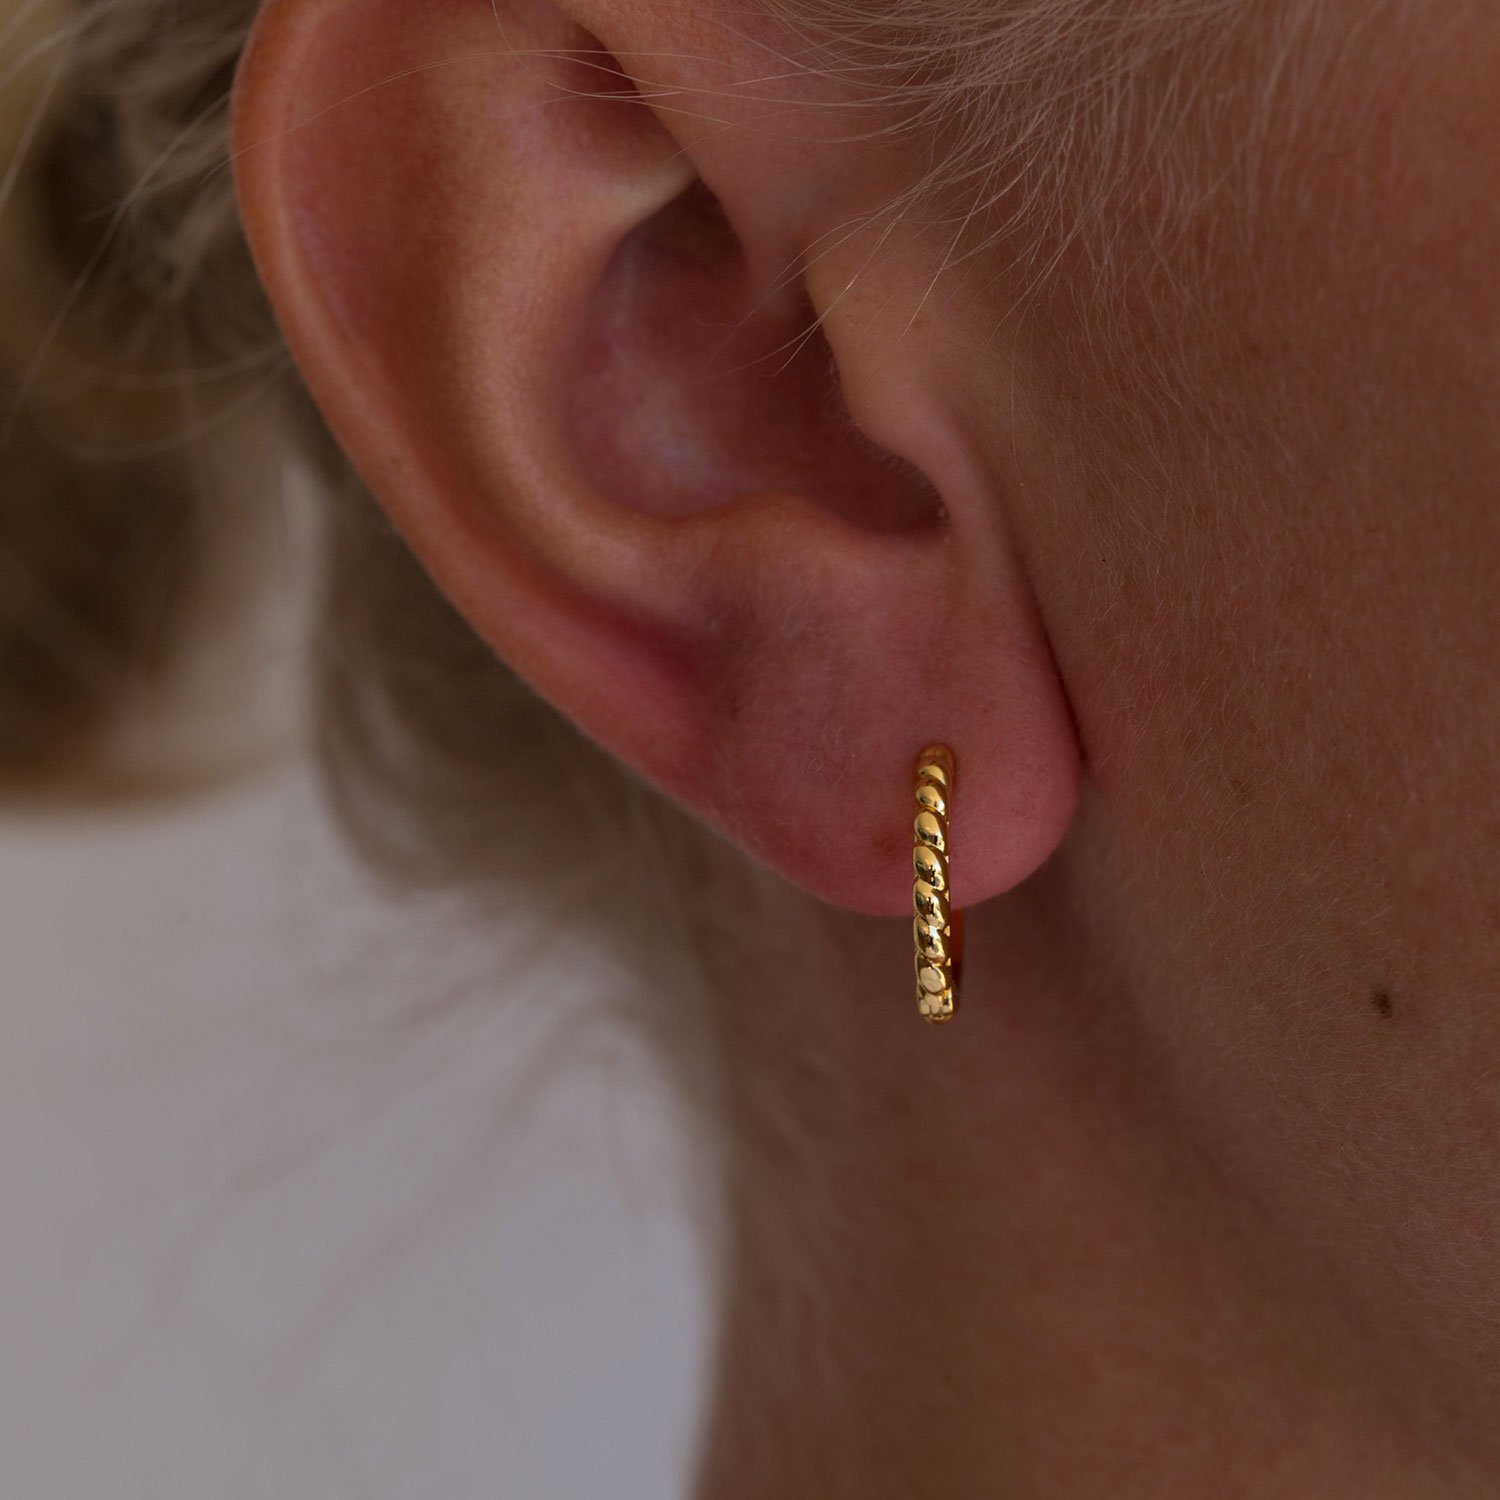 15mm twisted hoops